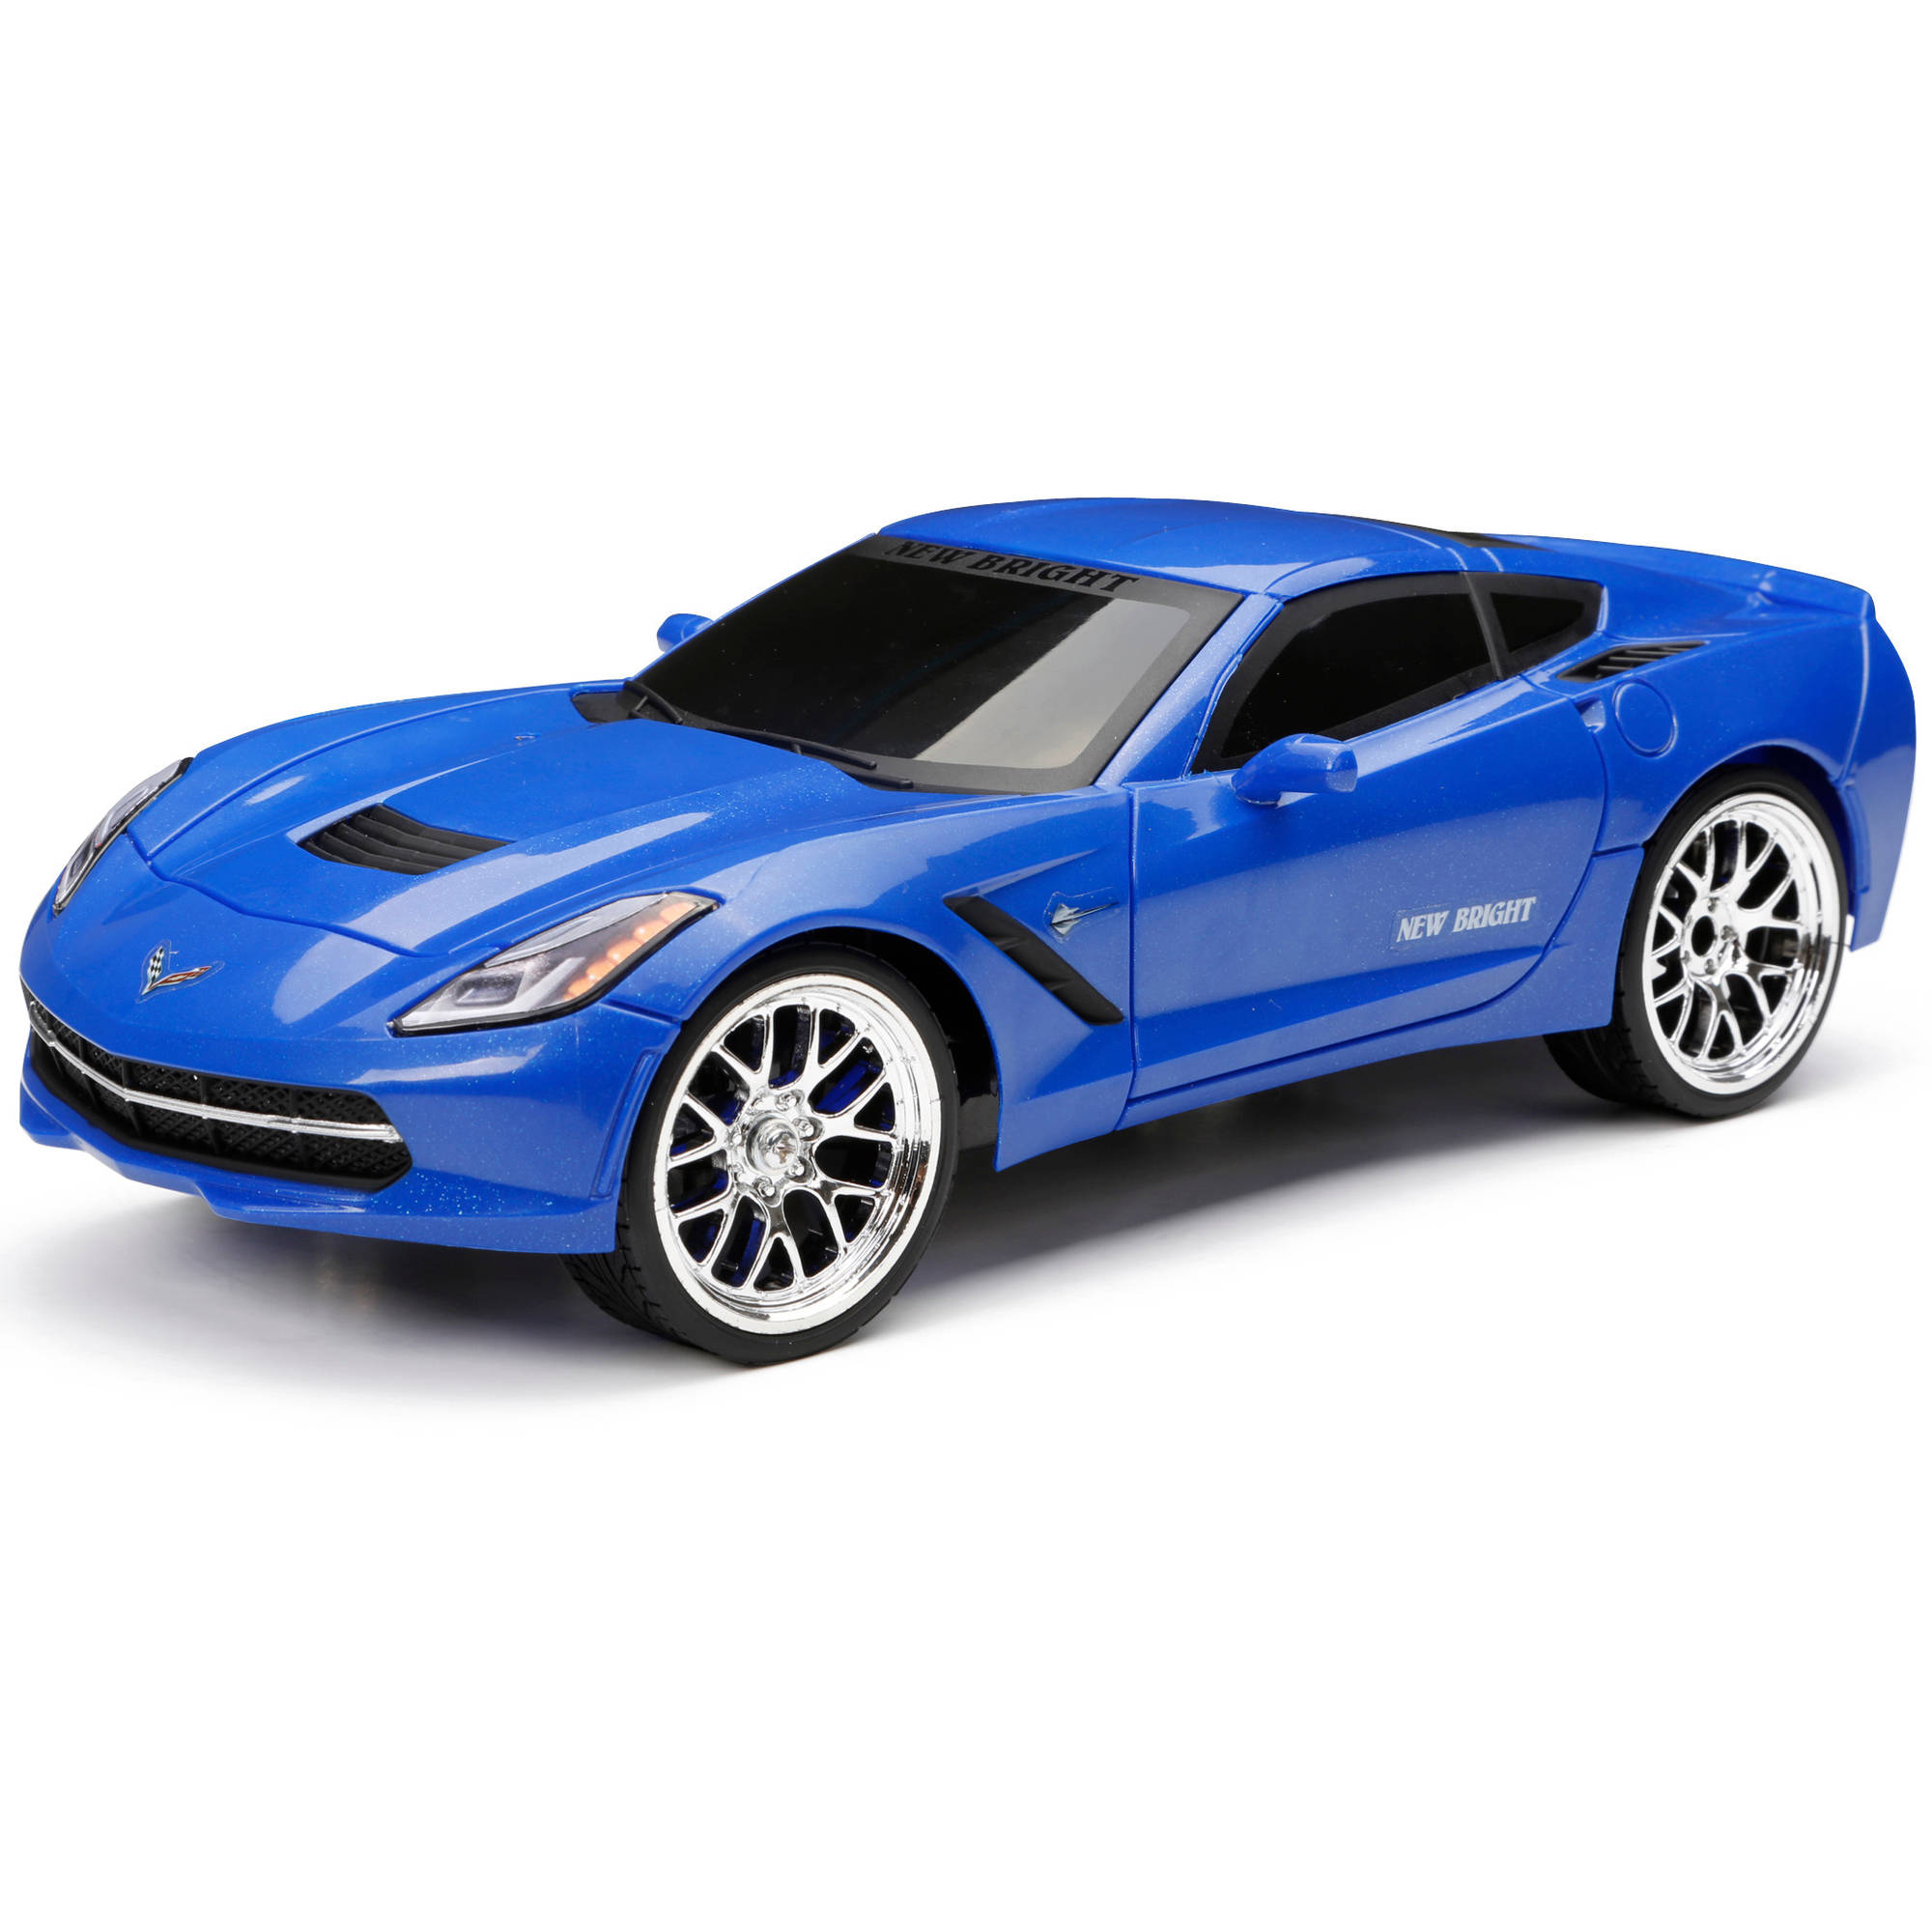 New Bright 1:16 Radio-Control Full-Function Corvette, Blue